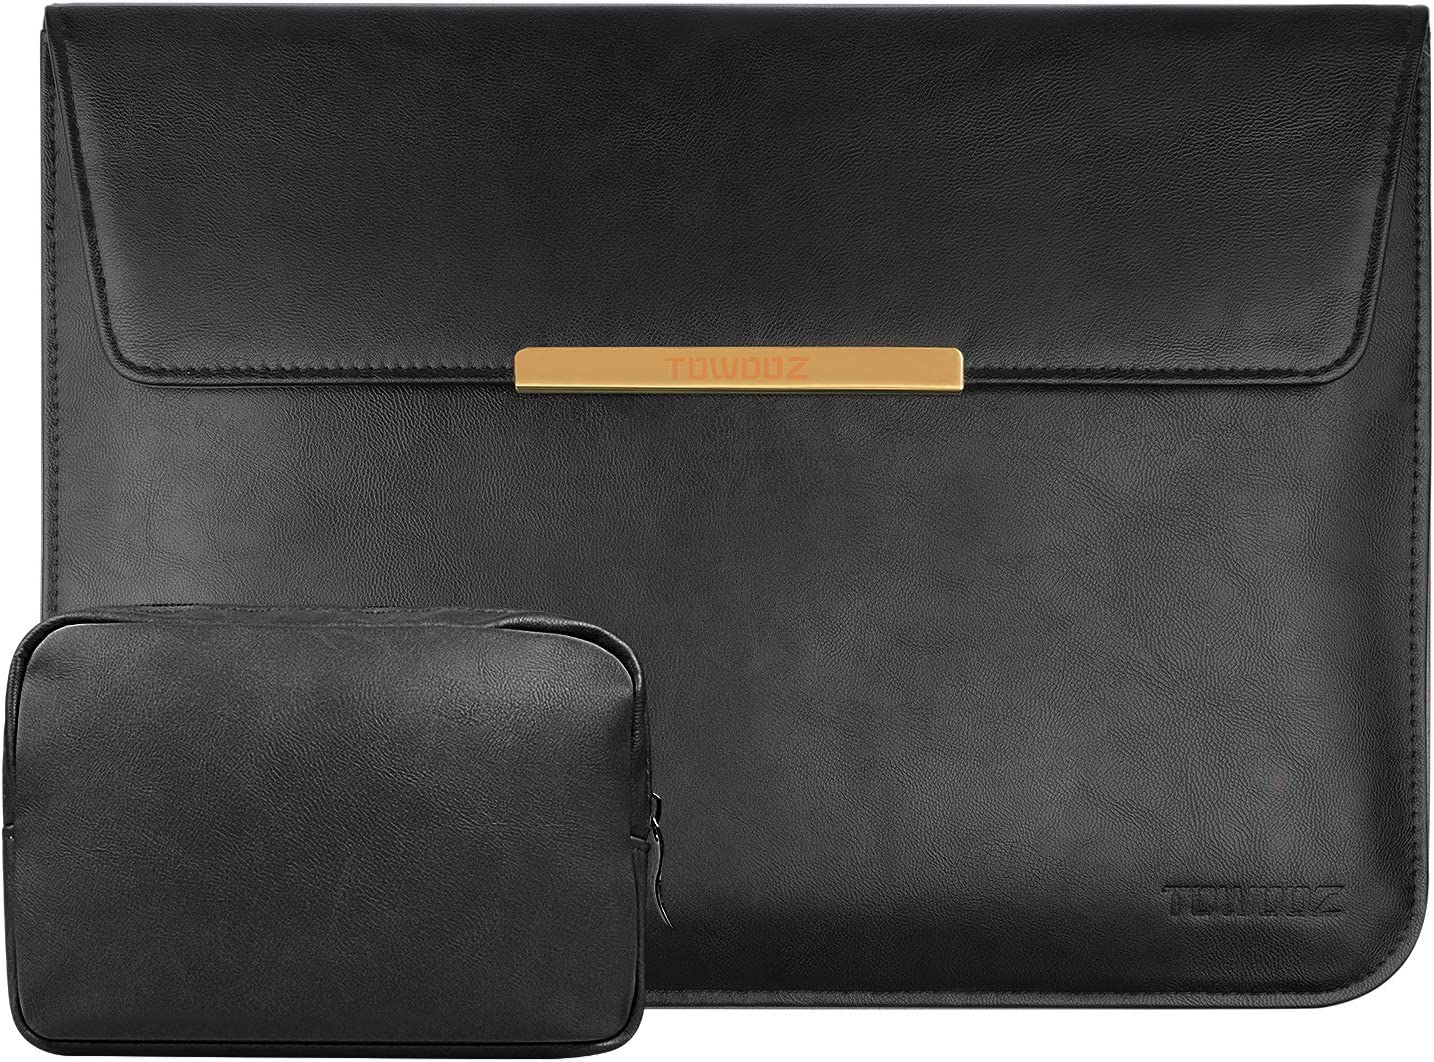 13-13.3, PU Black PU Leather Bag TOWOOZ 13.3 Inch Laptop Sleeve Case Compatible with 2016-2020 MacBook Air//MacBook Pro 13-13.3 inch//iPad Pro 12.9 Dell XPS 13// Surface Pro X